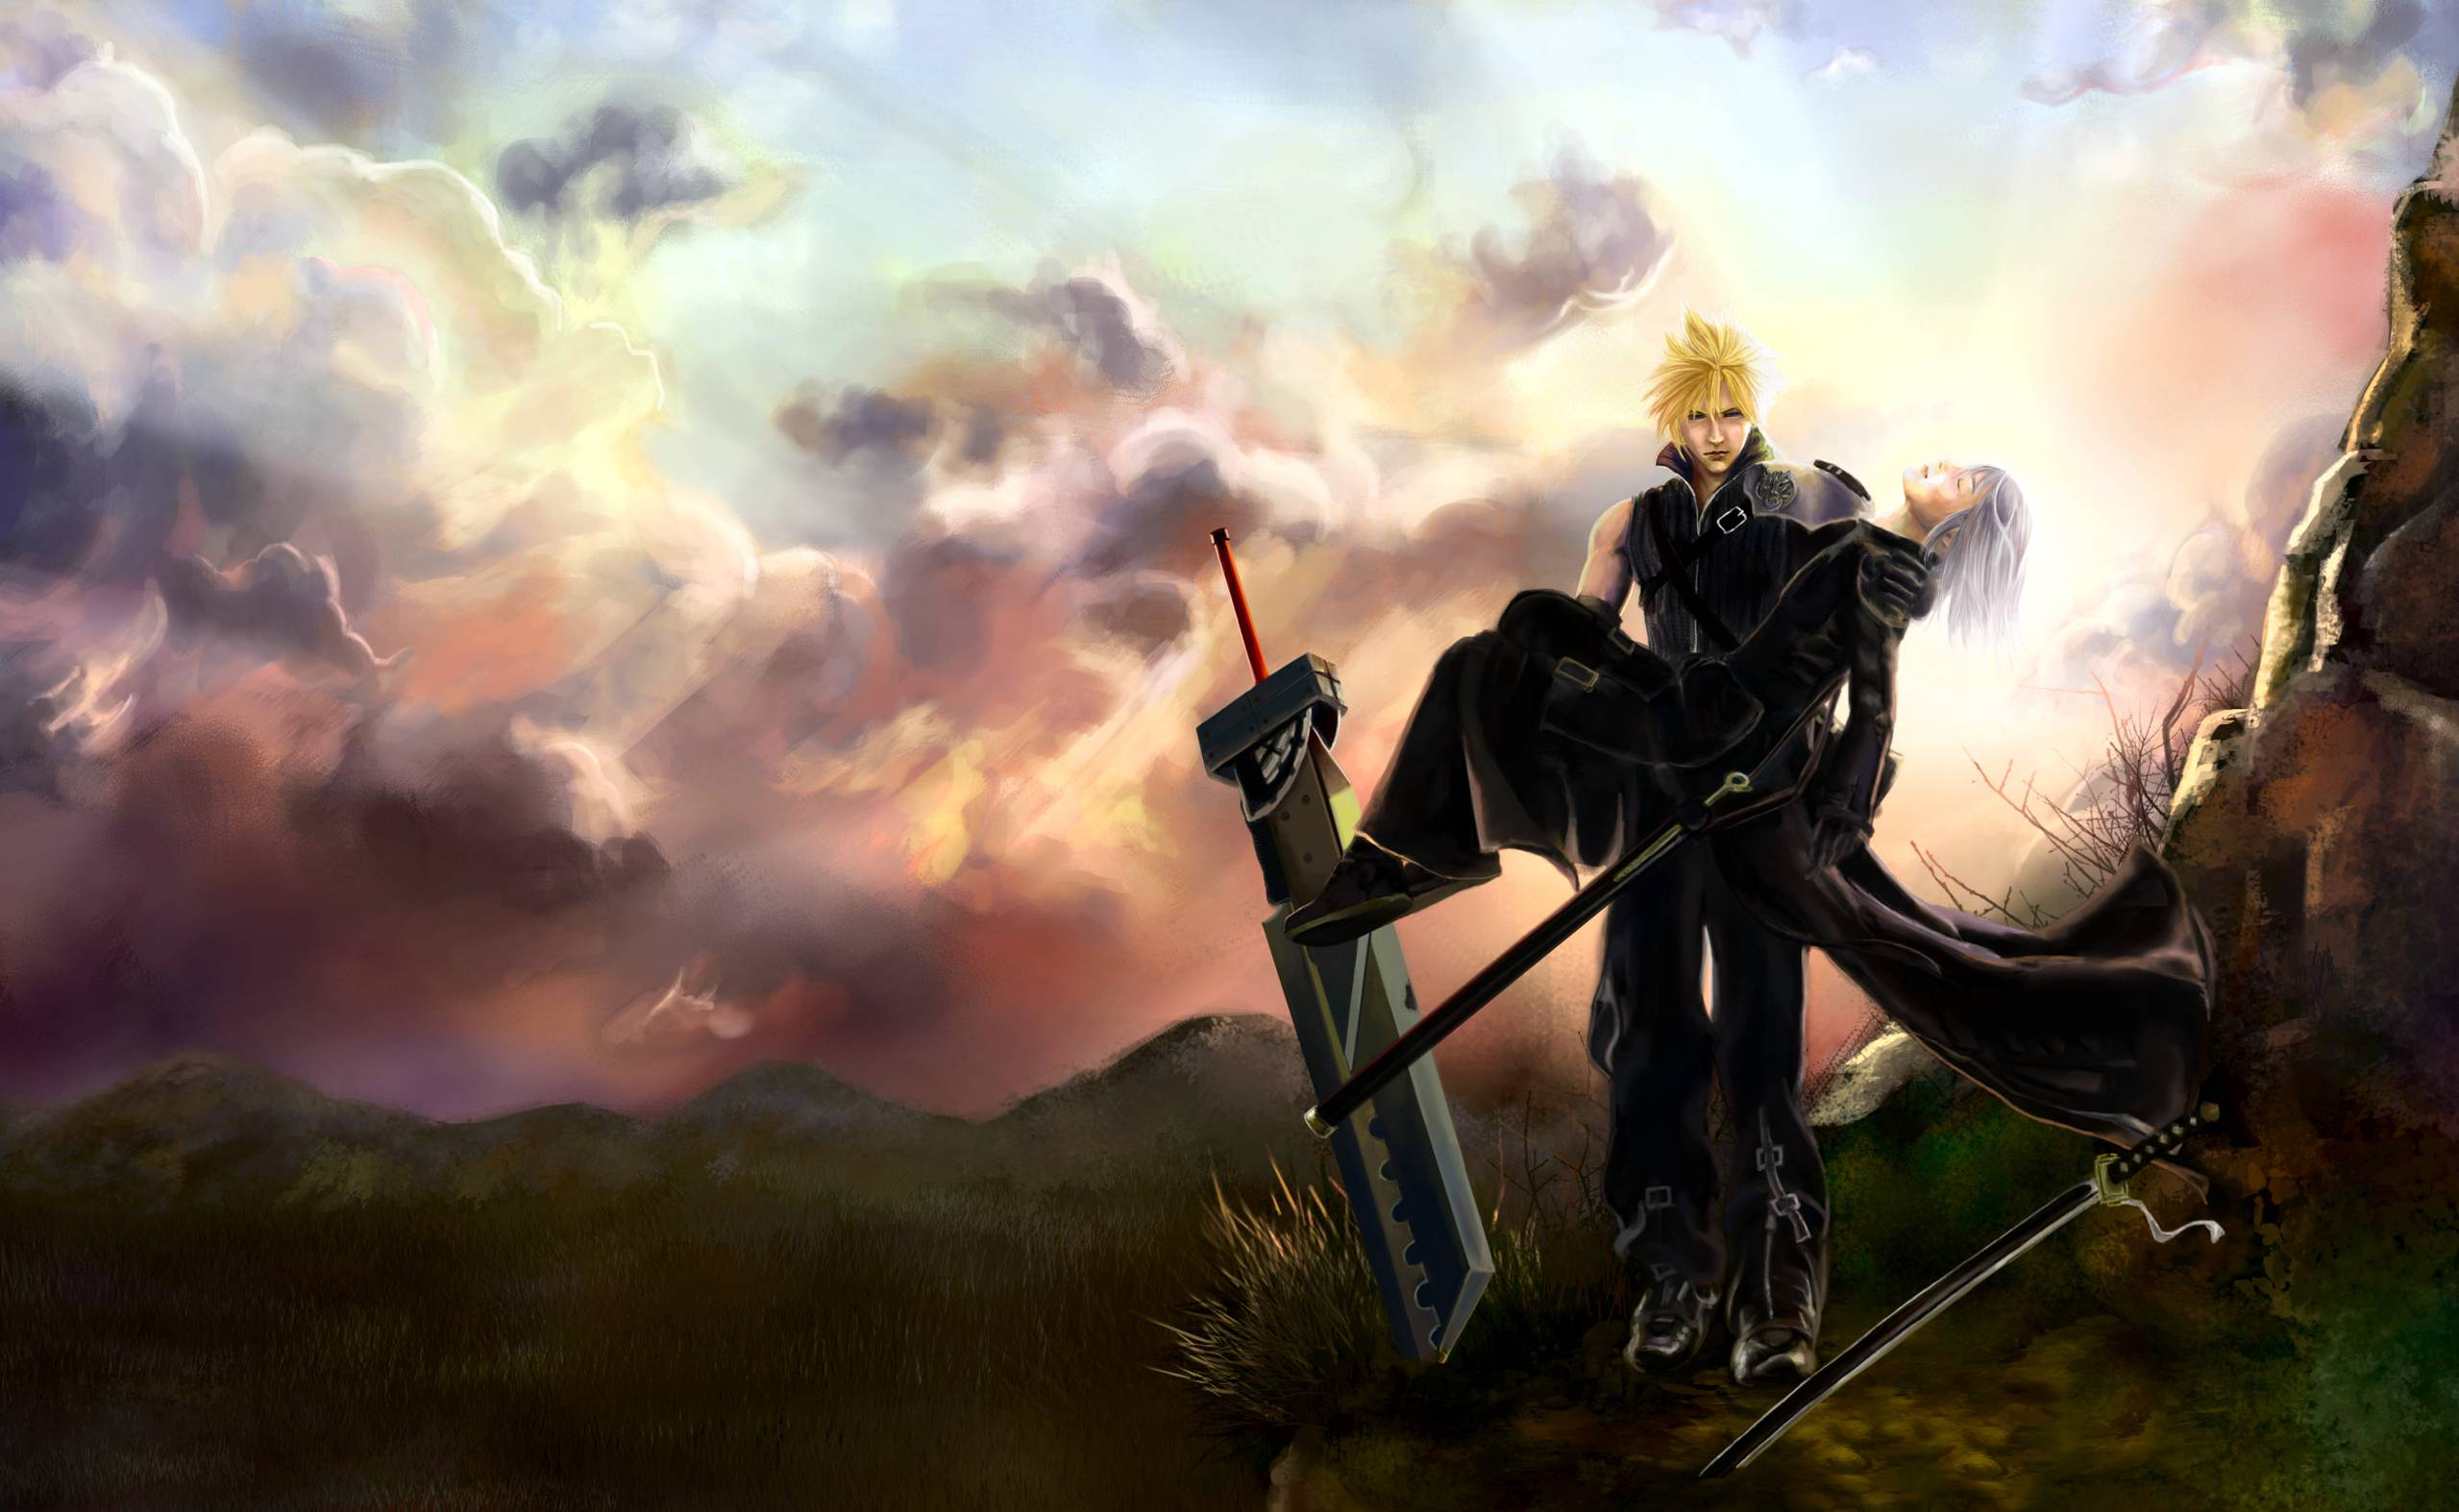 Final Fantasy Wallpapers 87 Background Pictures: Final Fantasy 7 Backgrounds